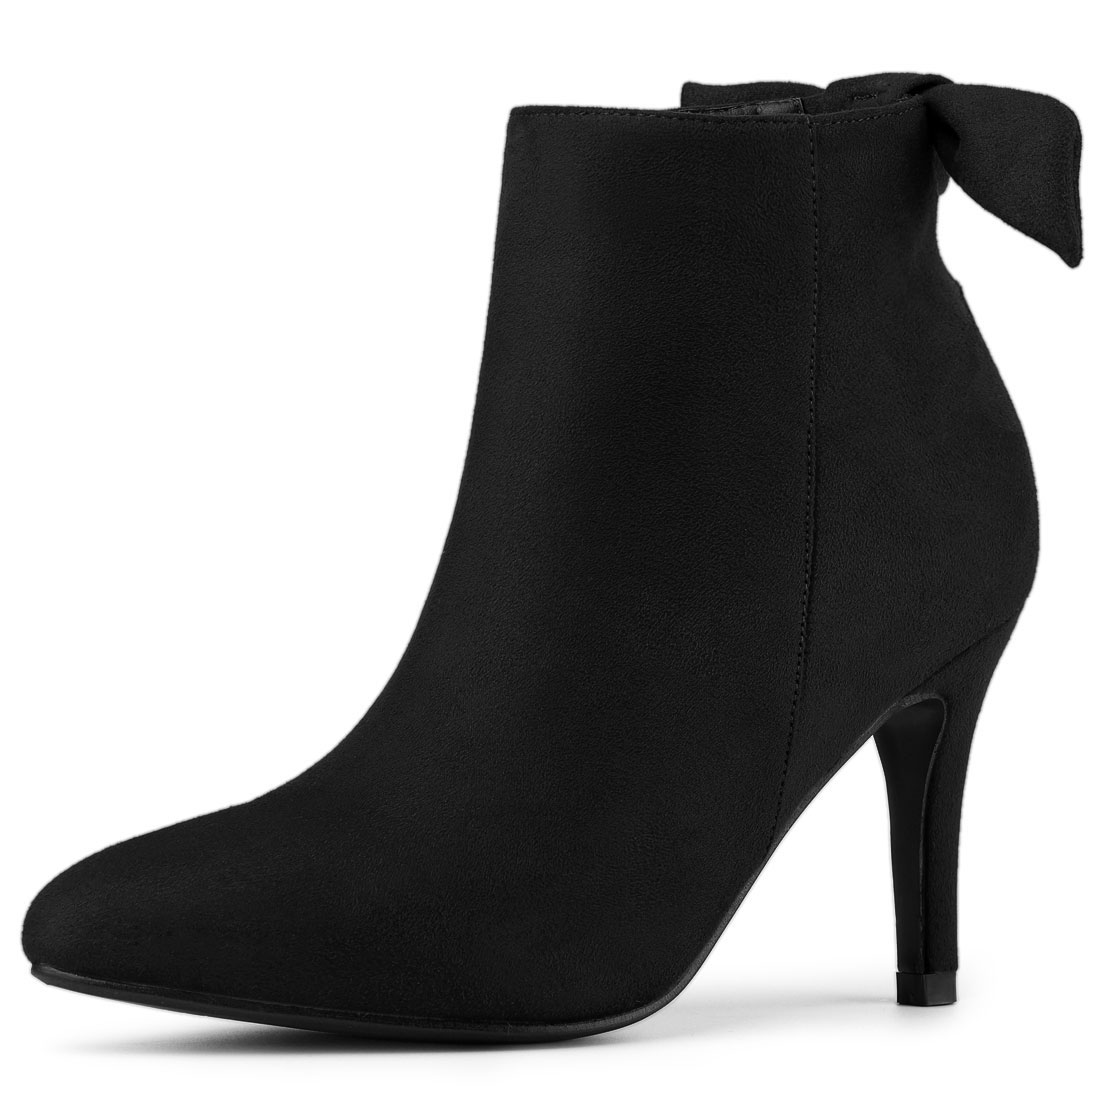 Allegra K Women's Pointed Toe Stiletto Heel Ankle Boots Black US 7